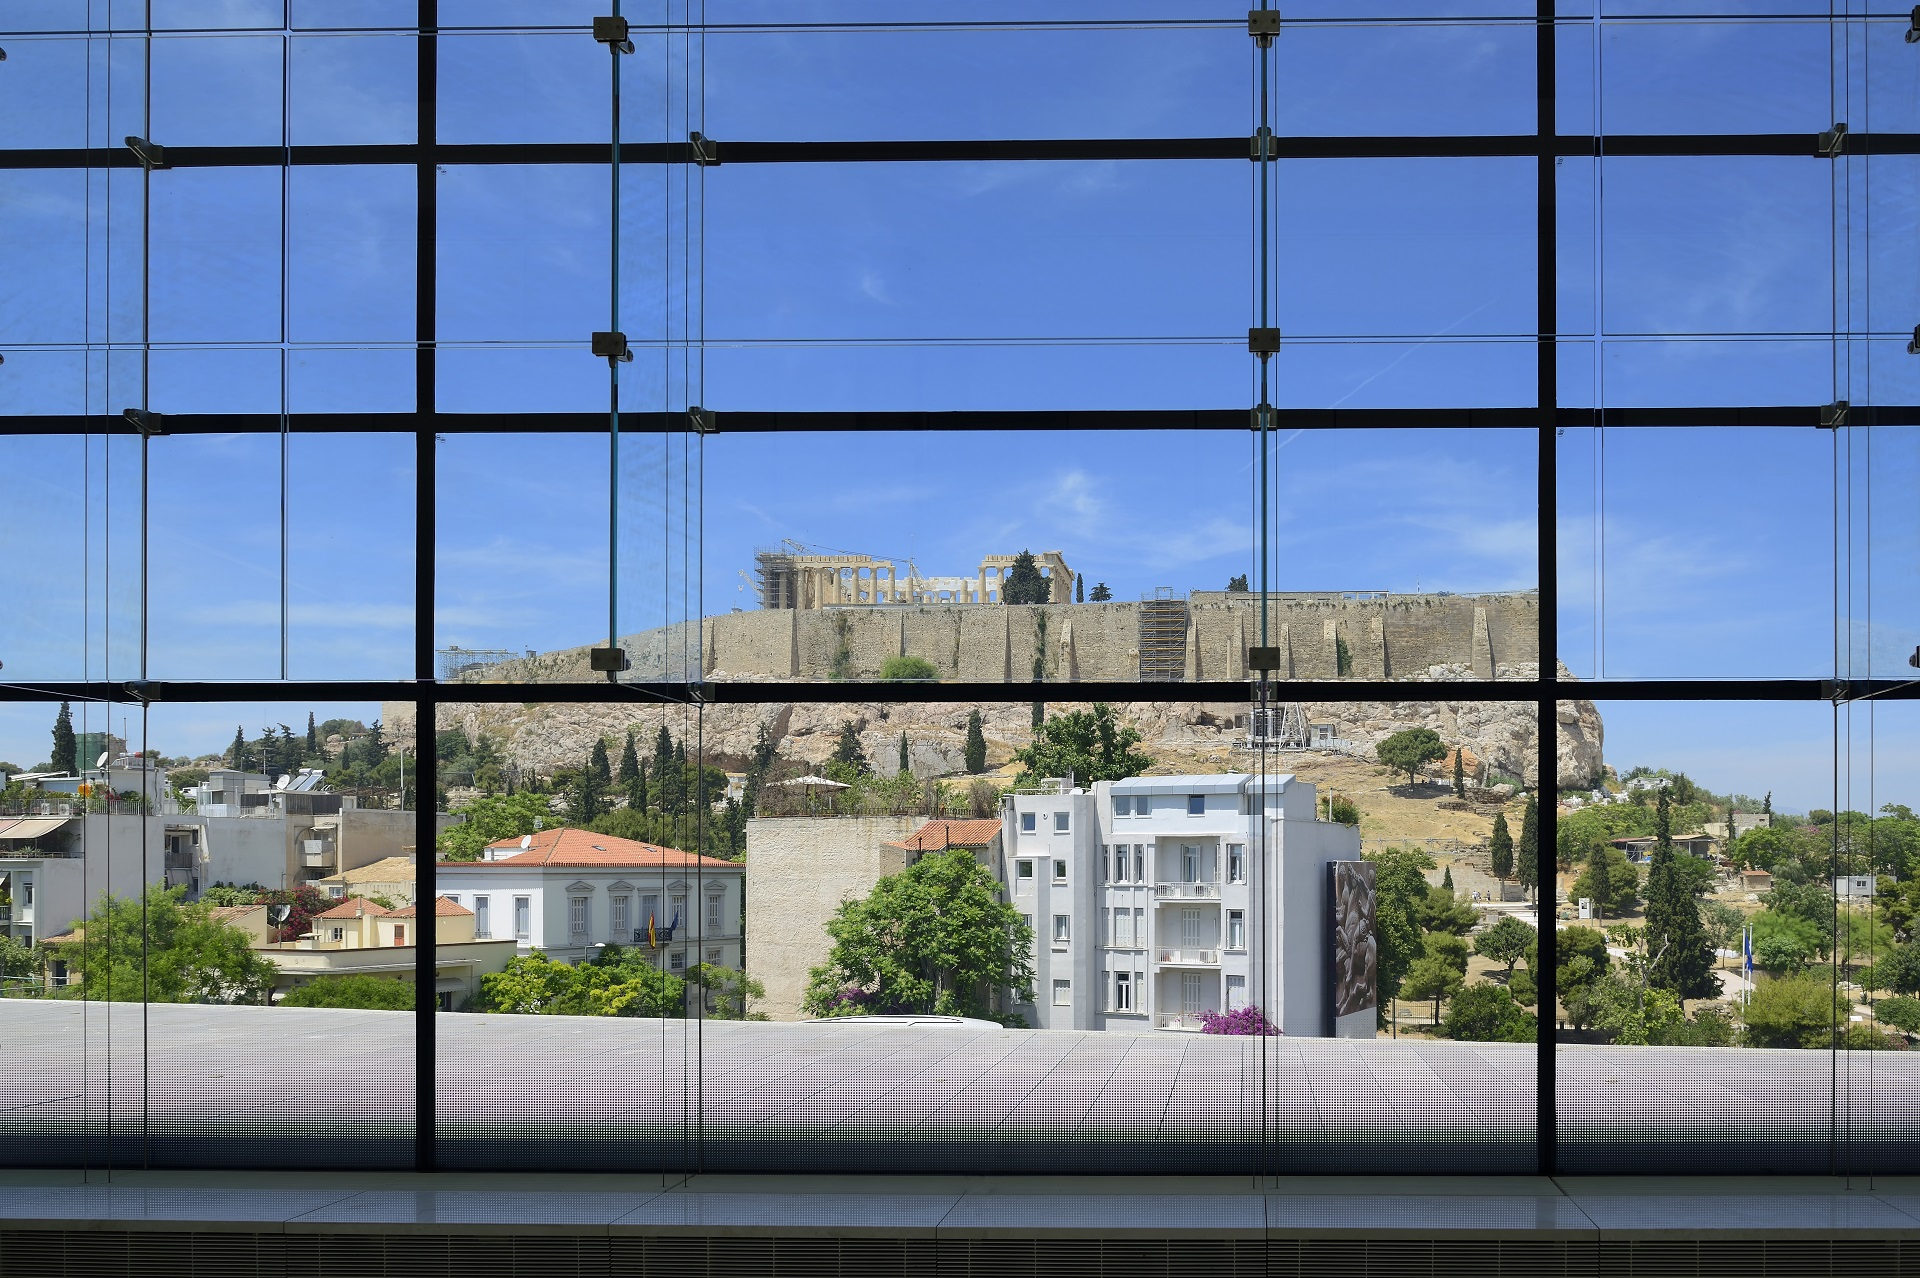 View of the Acropolis from the Museum of Acropolis